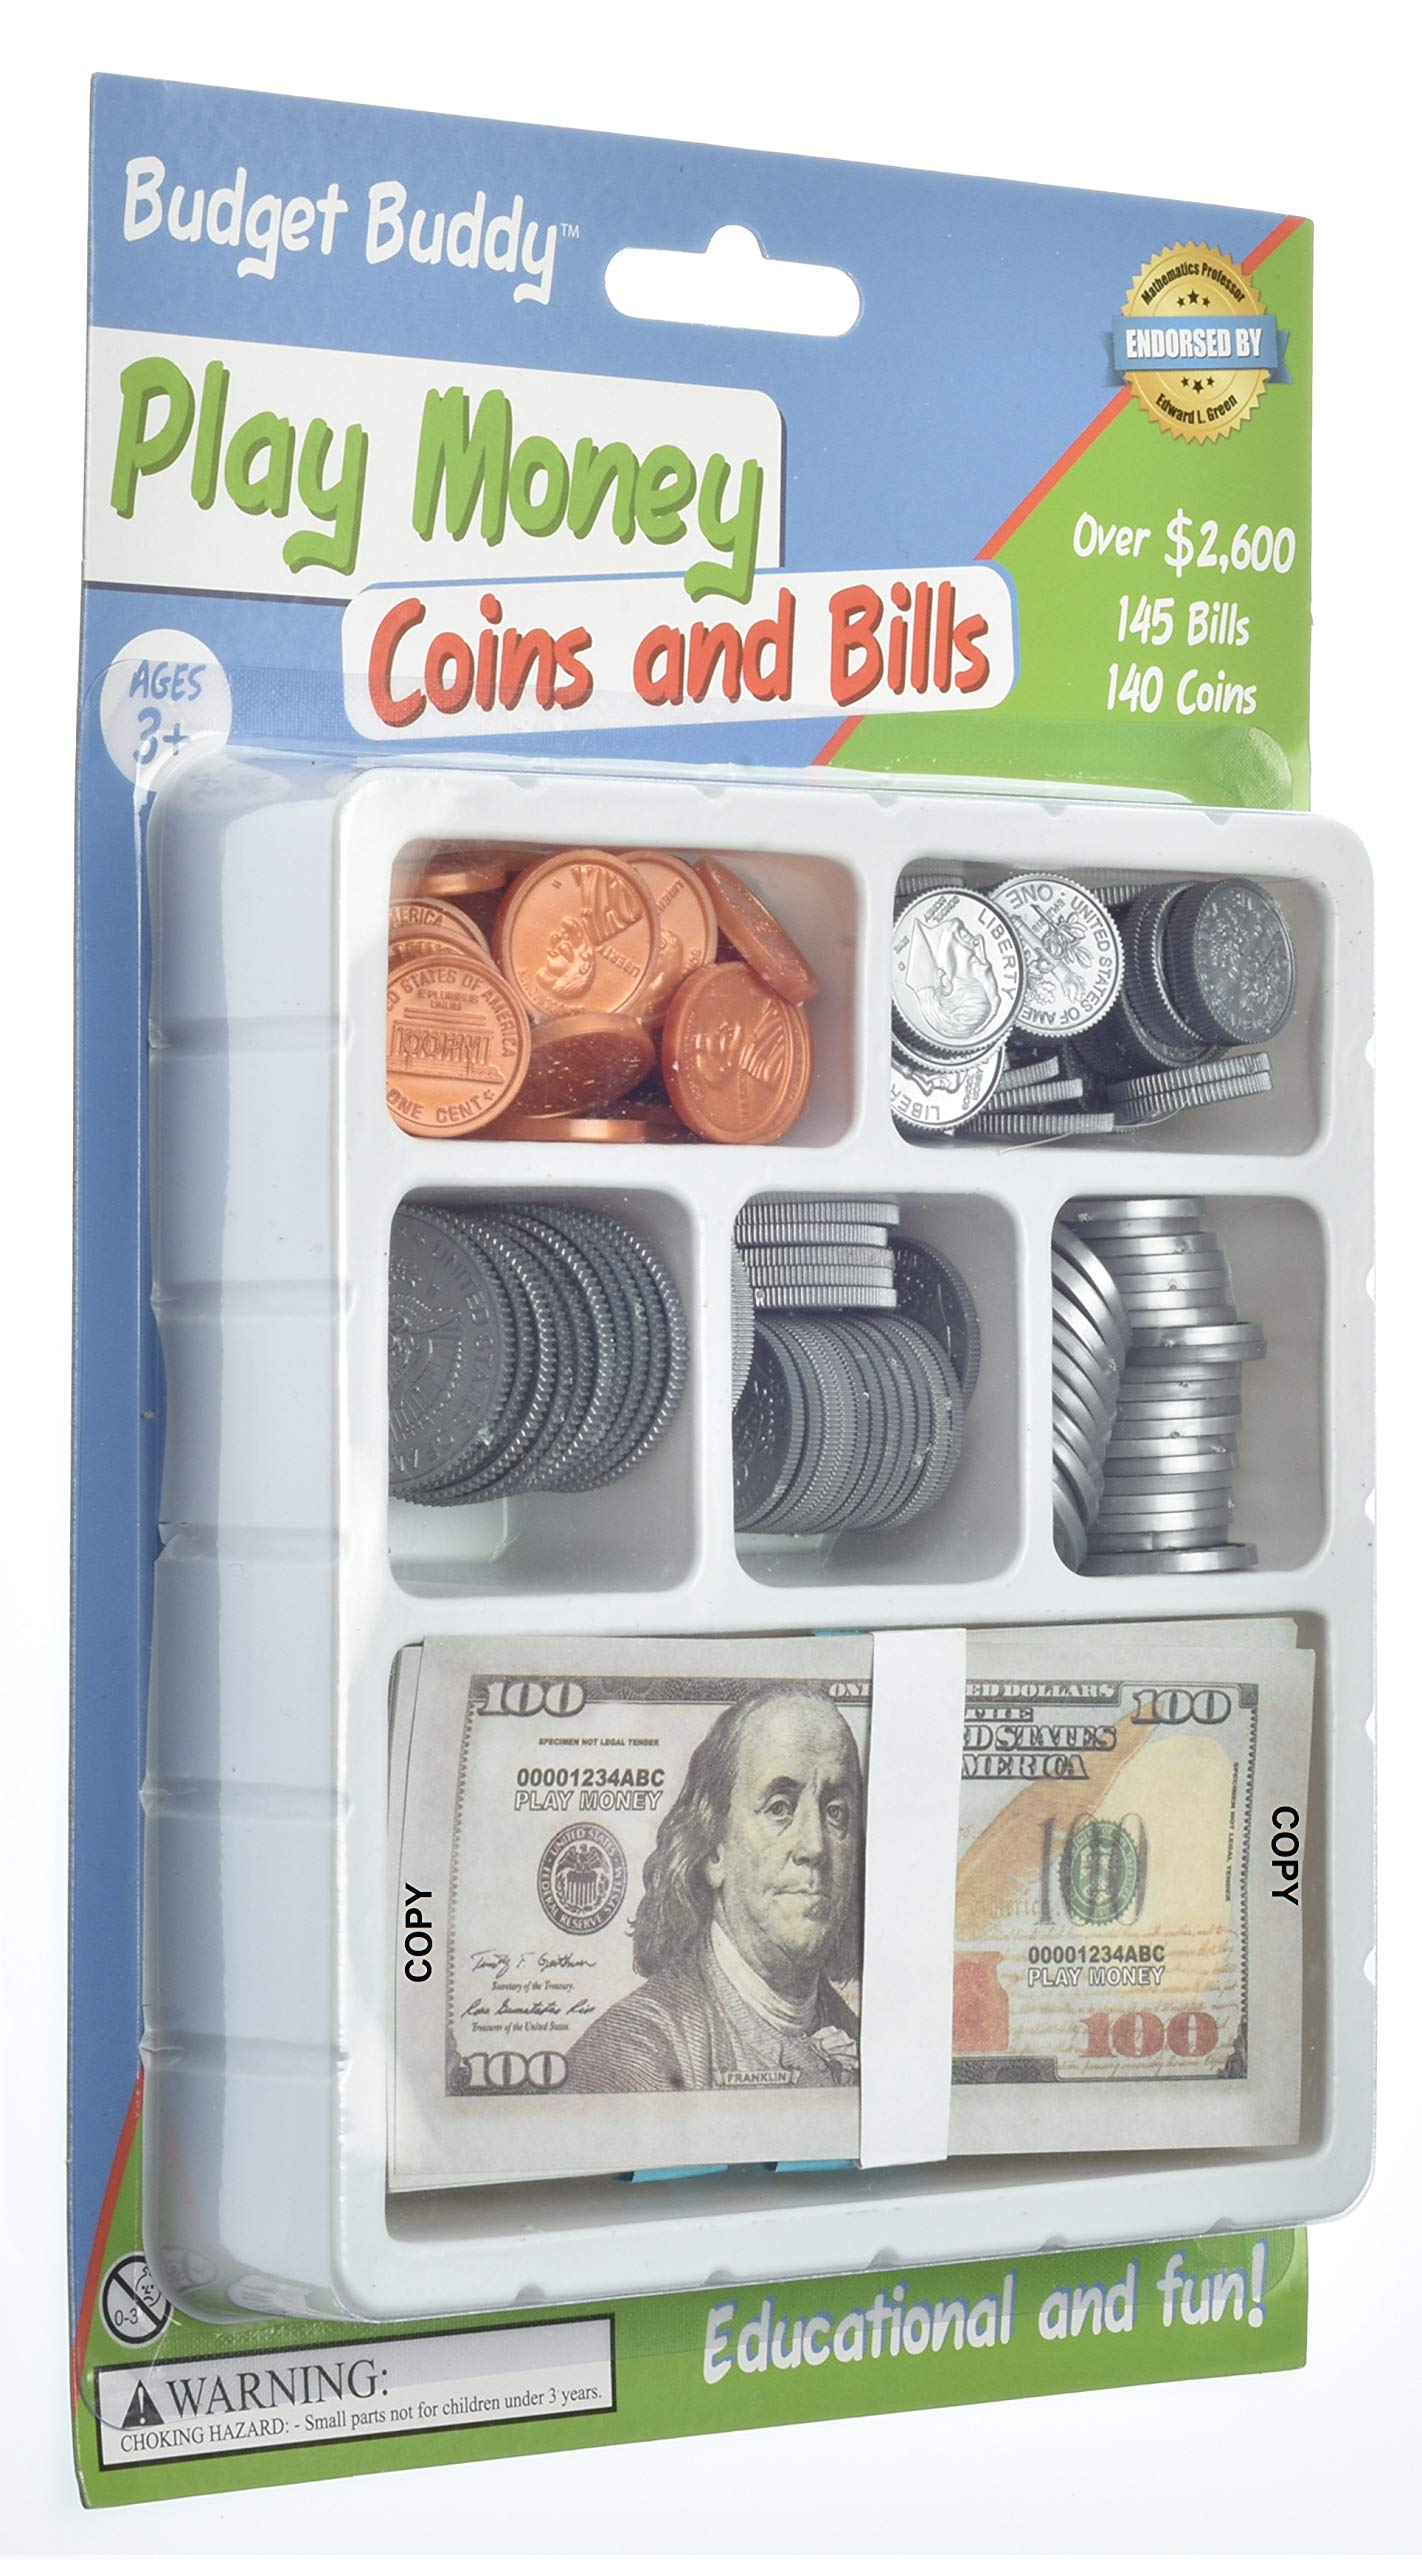 Teacher's Choice Pretend Play Money Set for Kids - 145 School Money Bills and 140 Plastic U.S. School Money Coins in Tray by Teacher's Choice